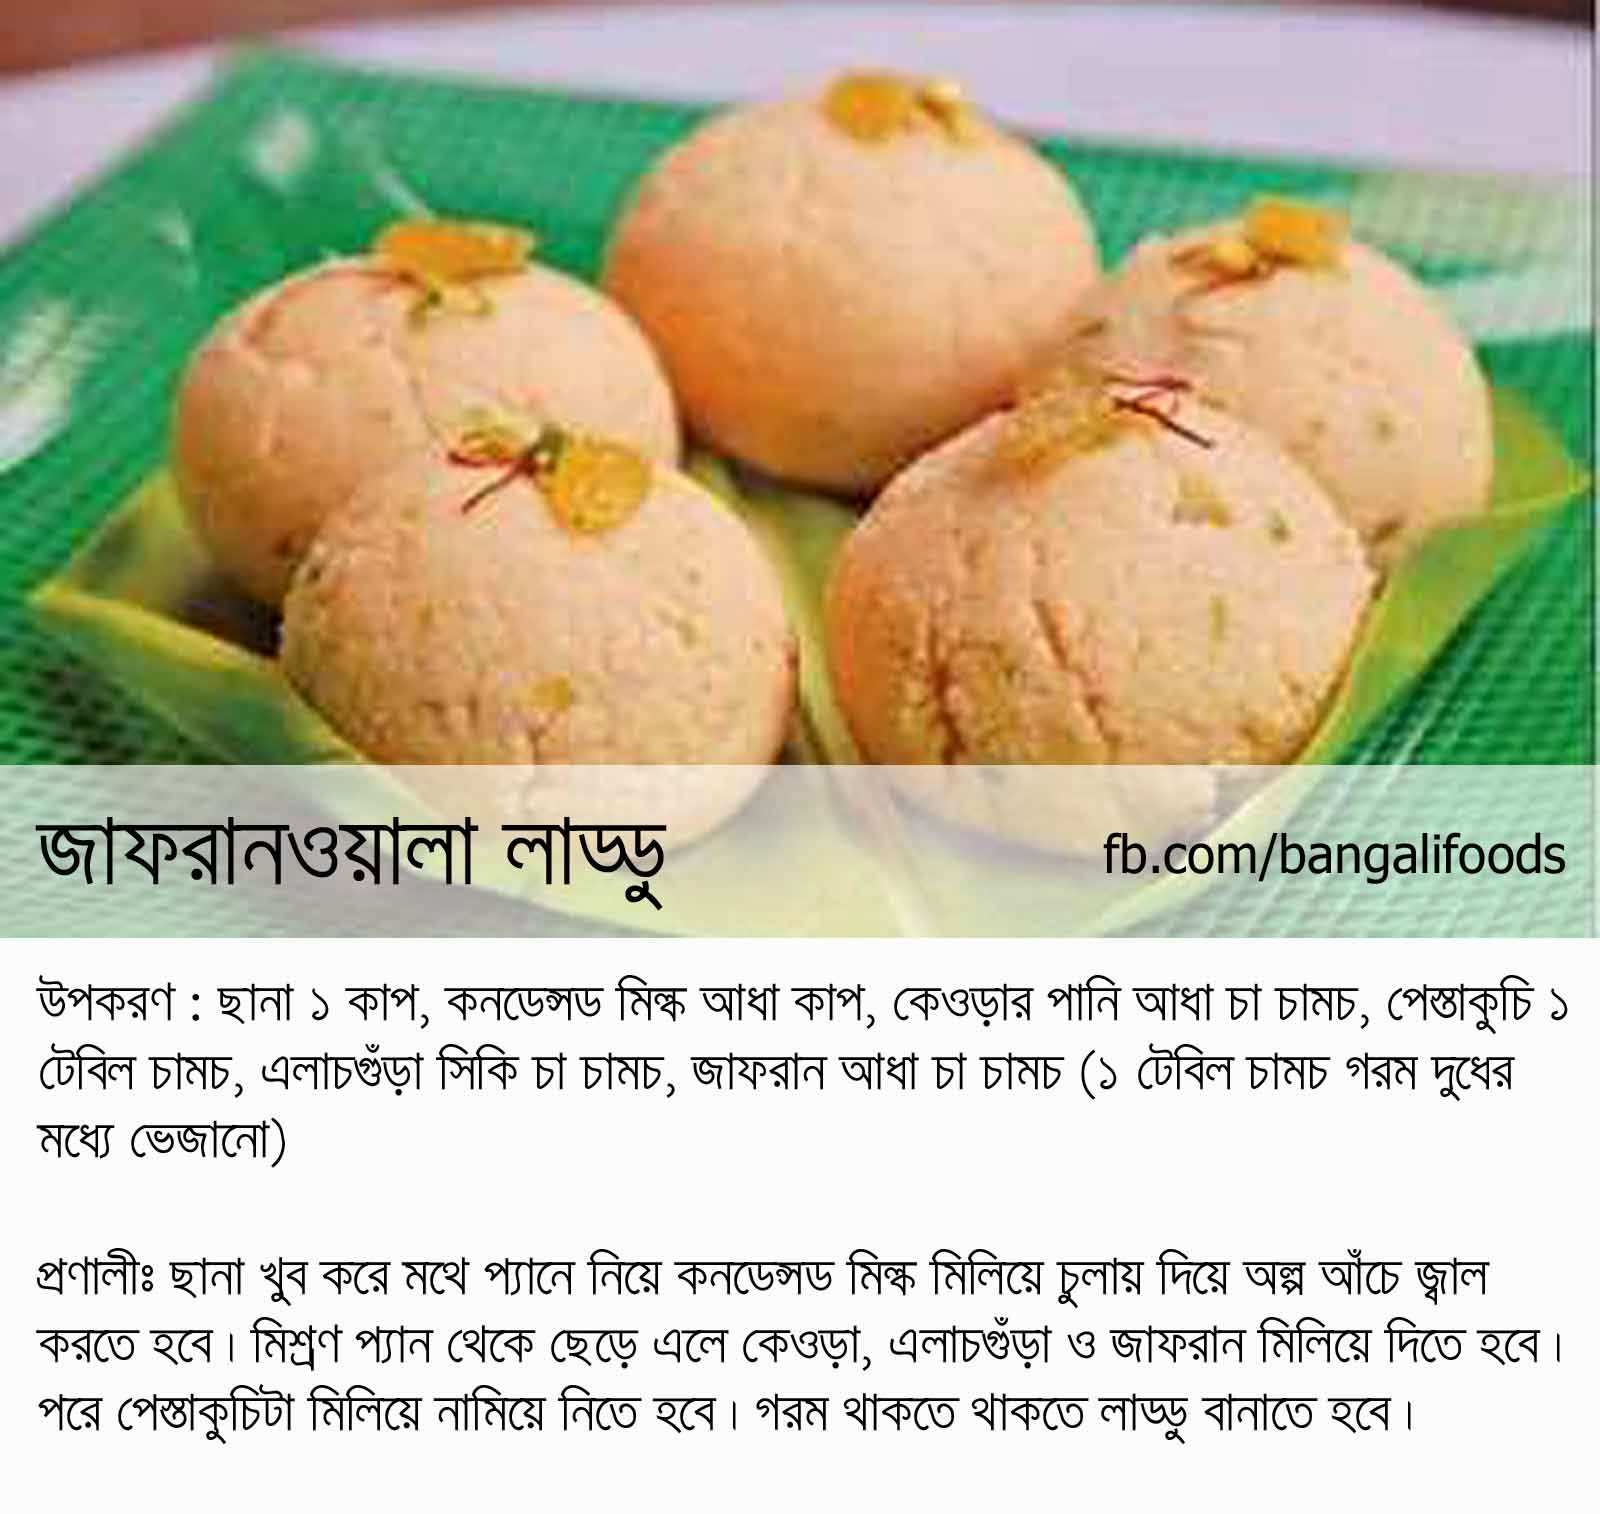 Bangali foods laddu recipes forumfinder